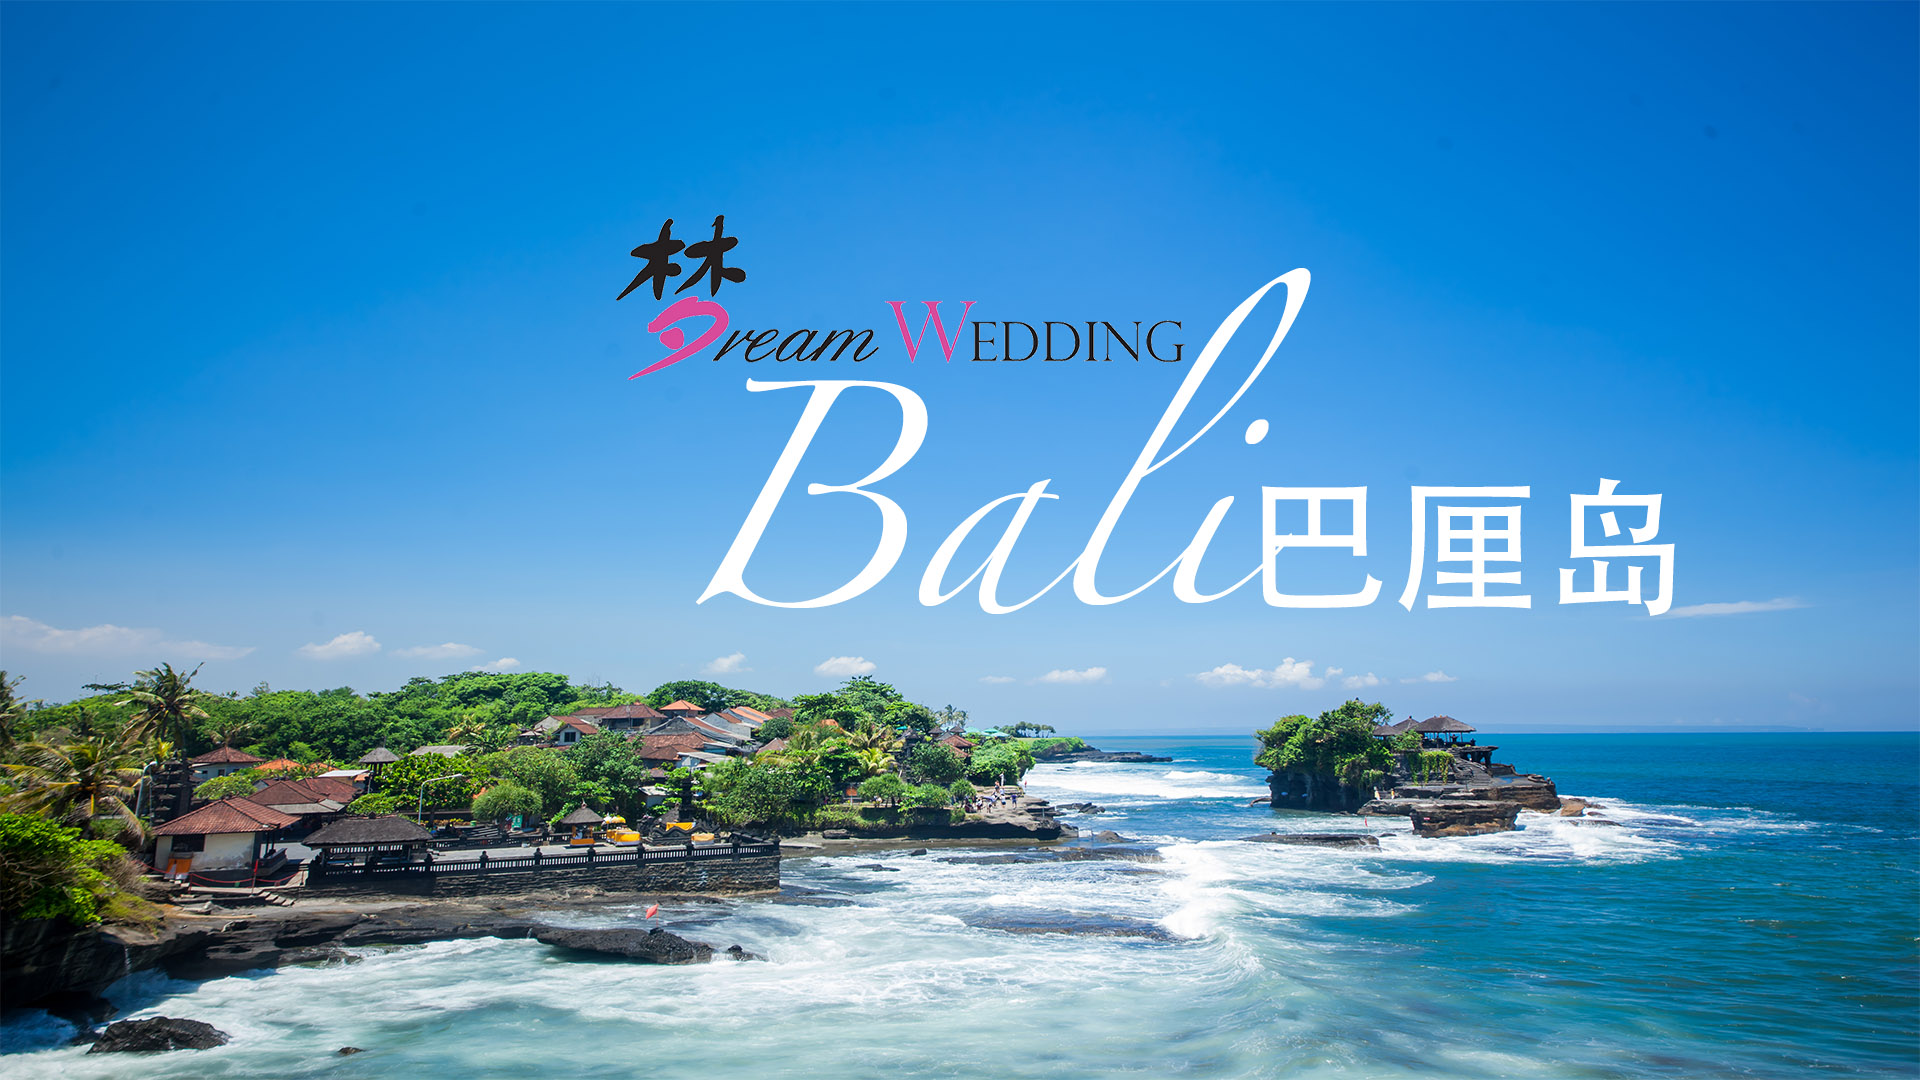 indonesia bali Pre Wedding Photograpy Package Singapore Bridal Dream Wedding Boutique photoshoot package